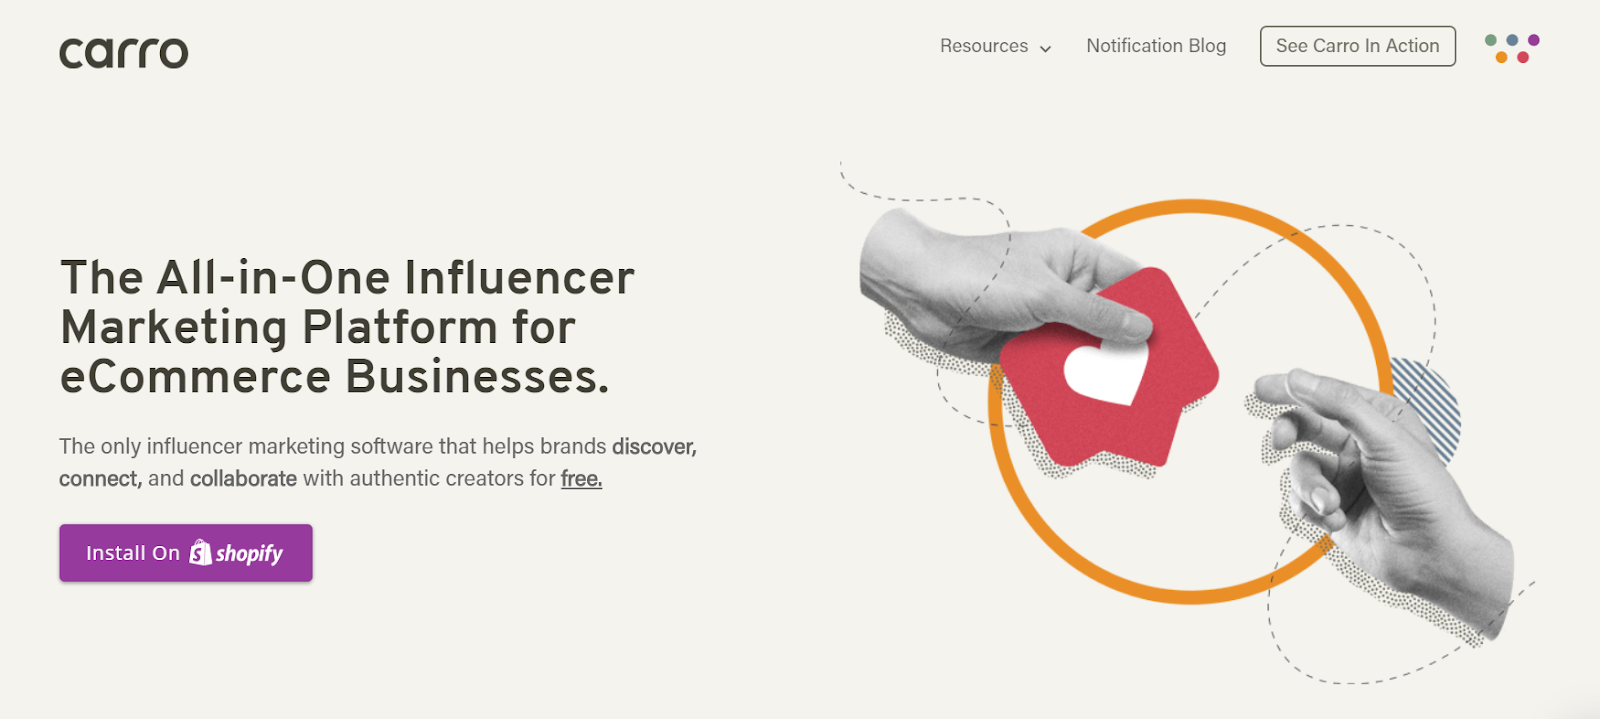 ecommerce marketing tools for influencer marketing